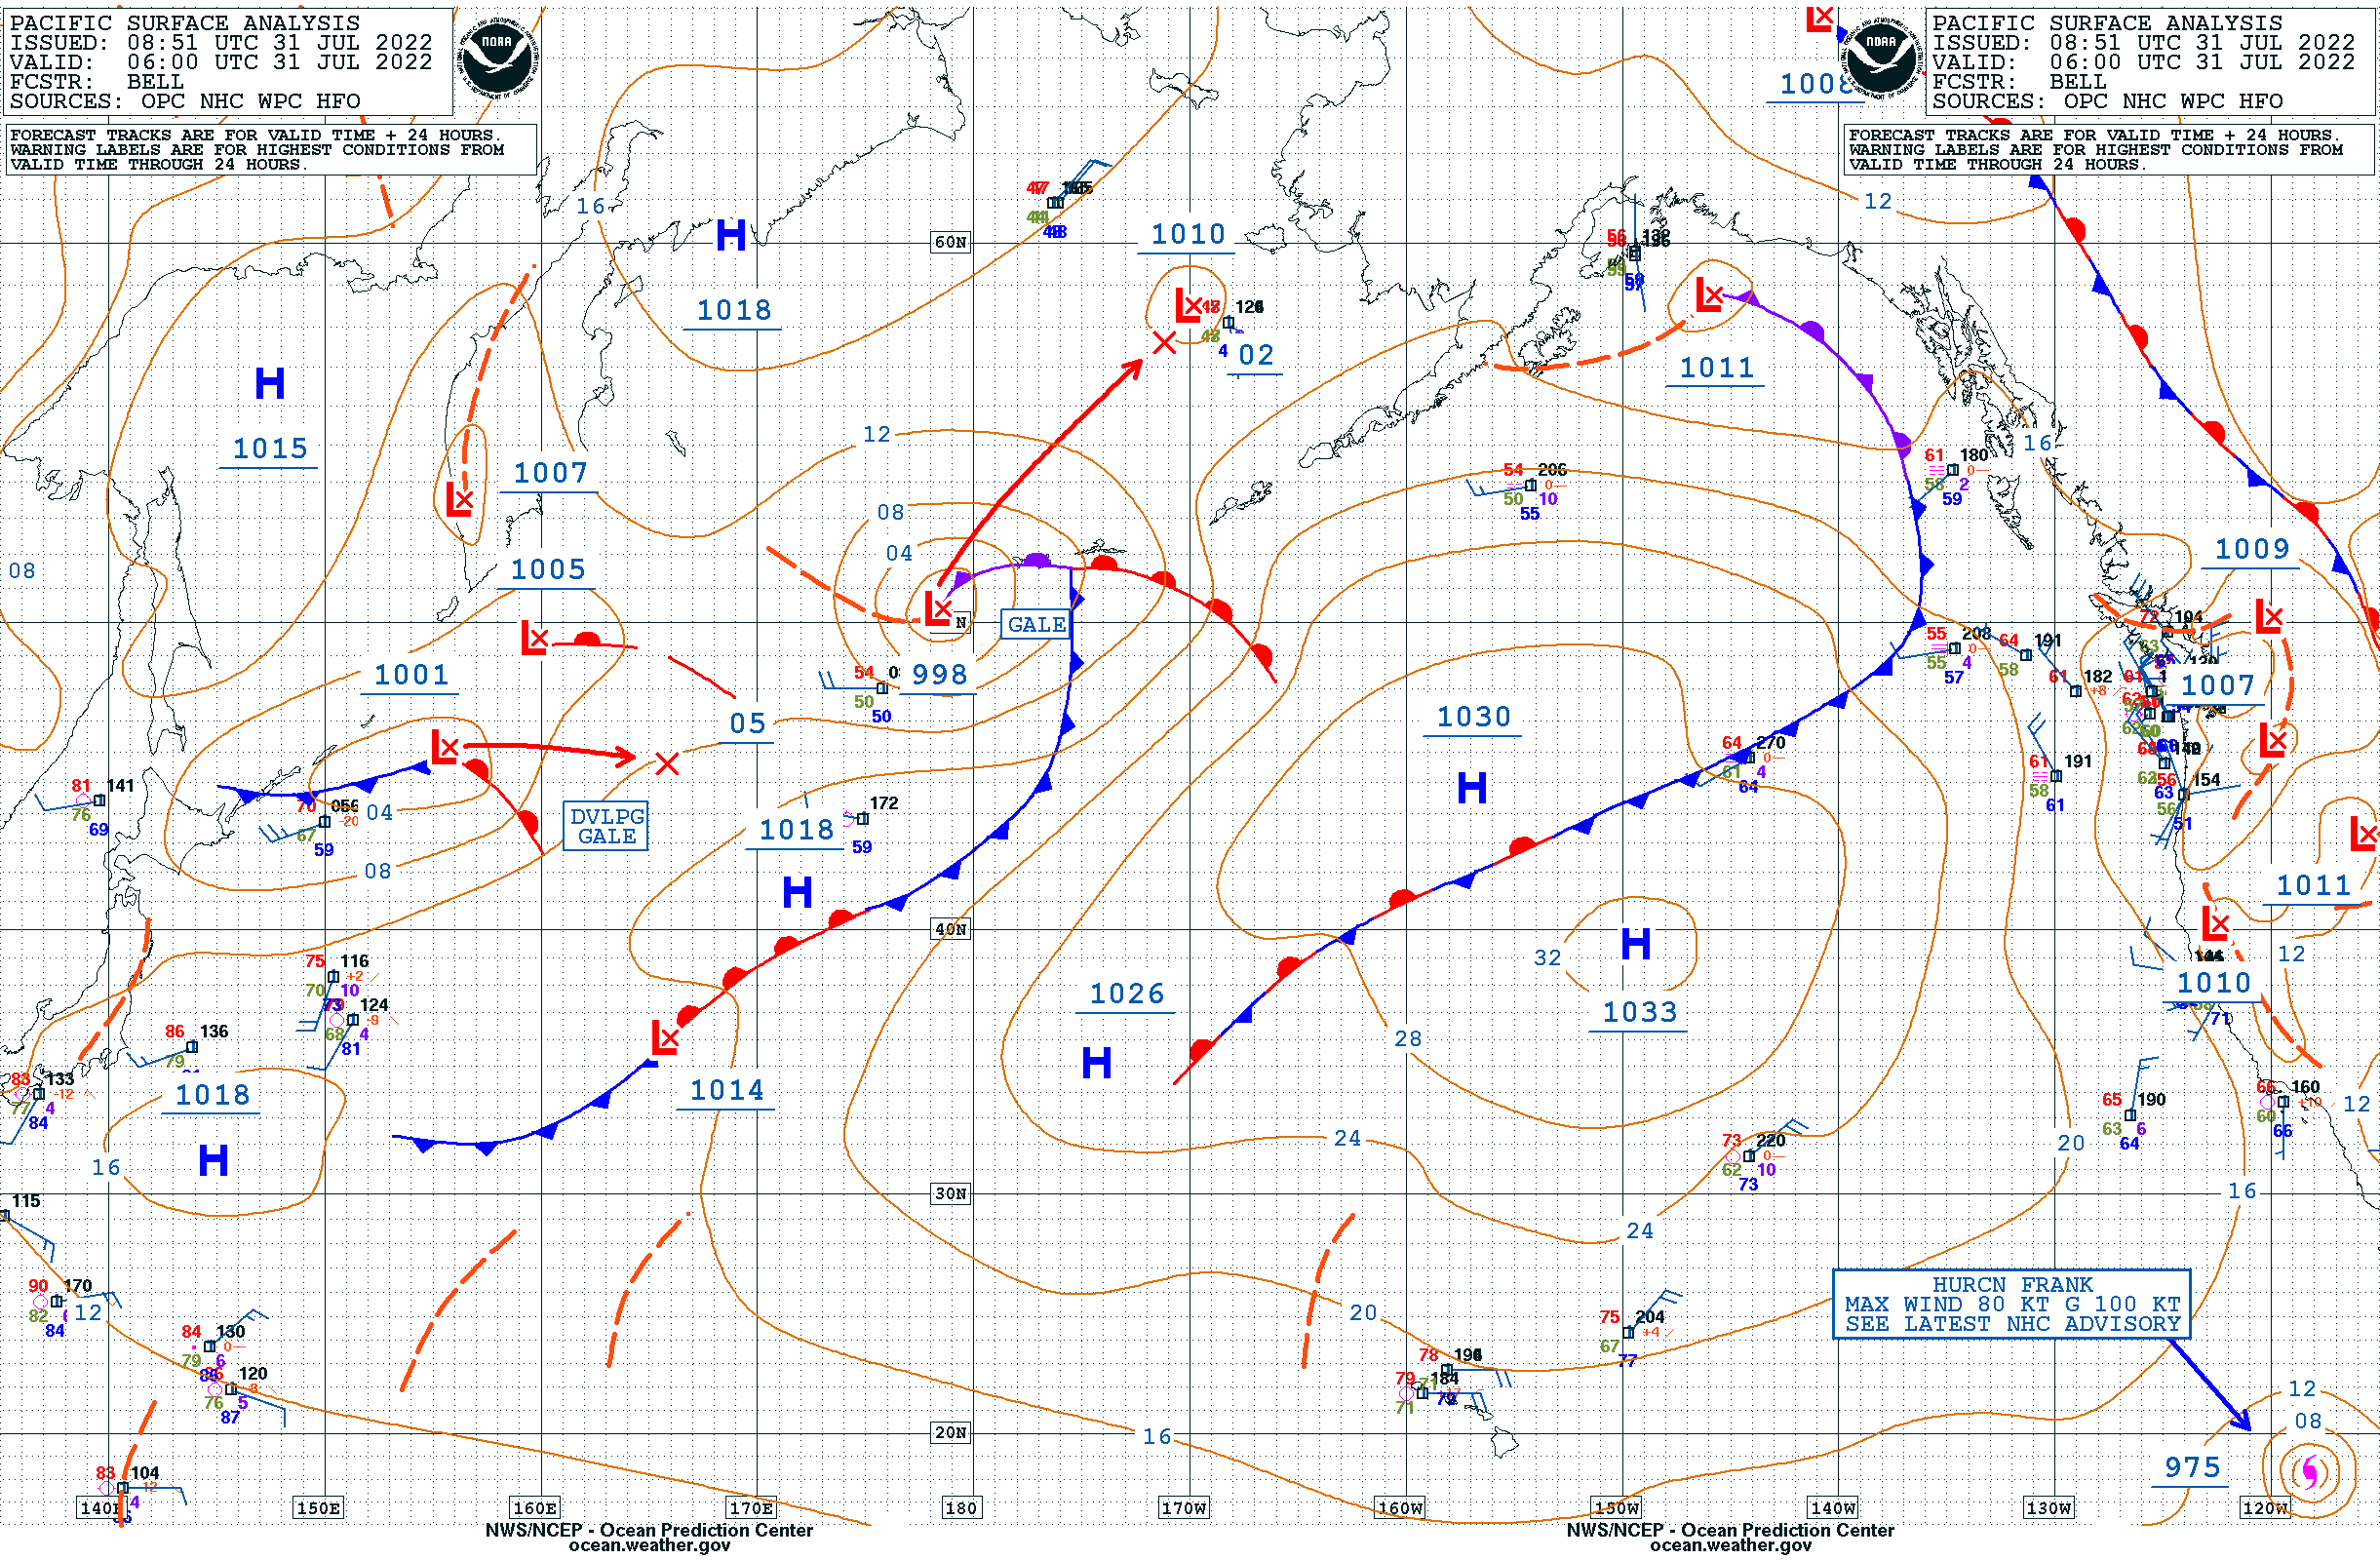 Ocean Prediction Center - Pacific Marine